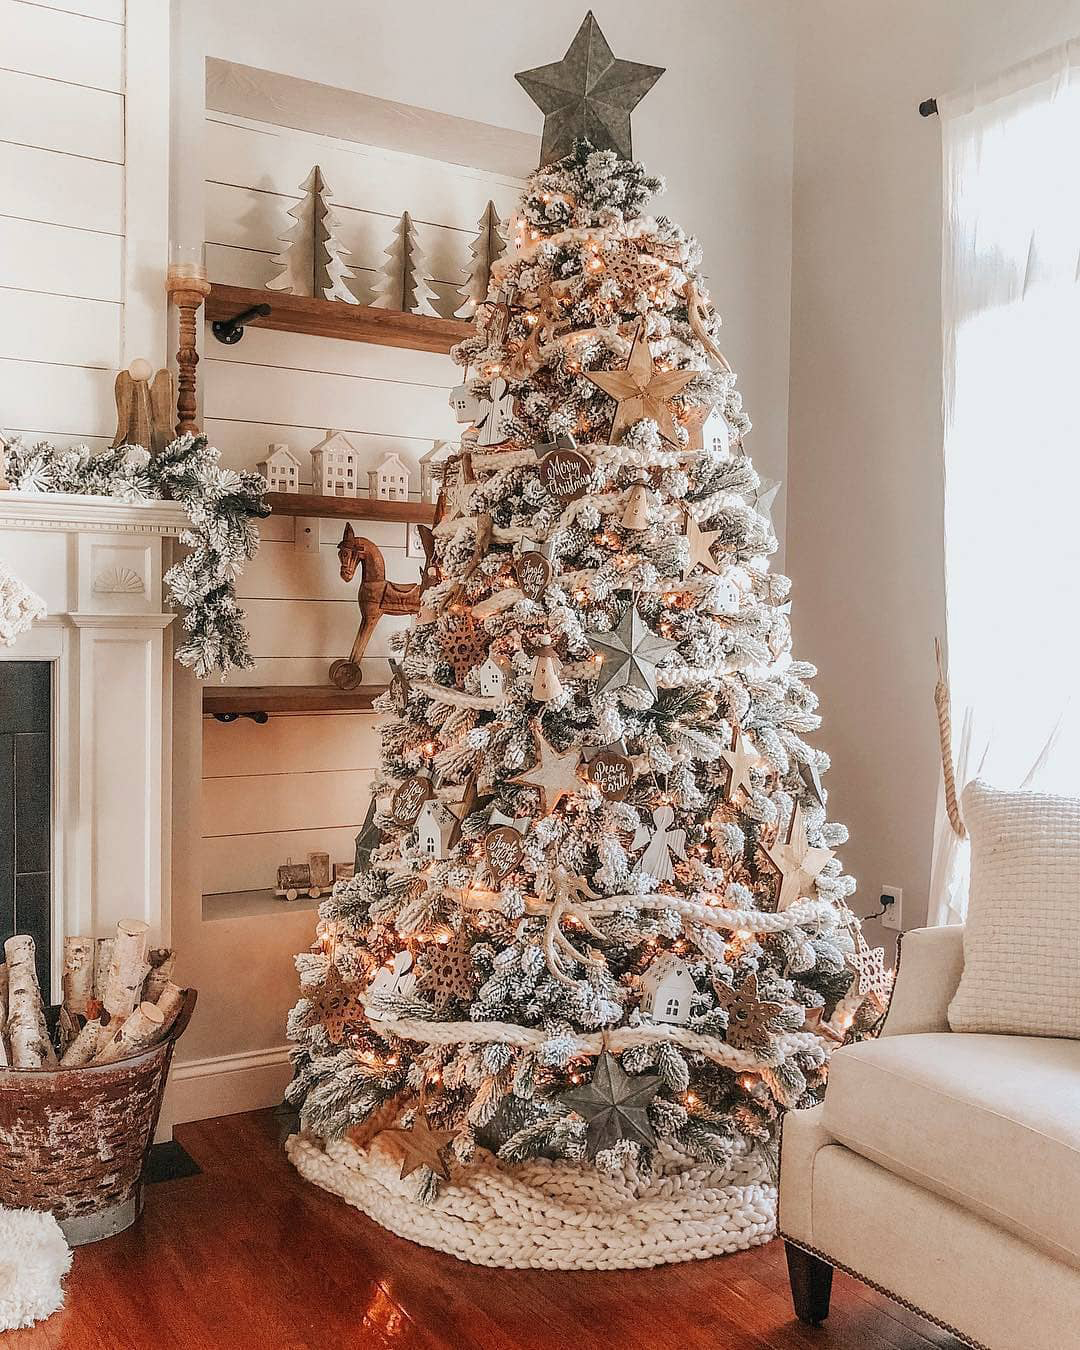 Rustic Christmas Image courtesy of: @thelovelydeco